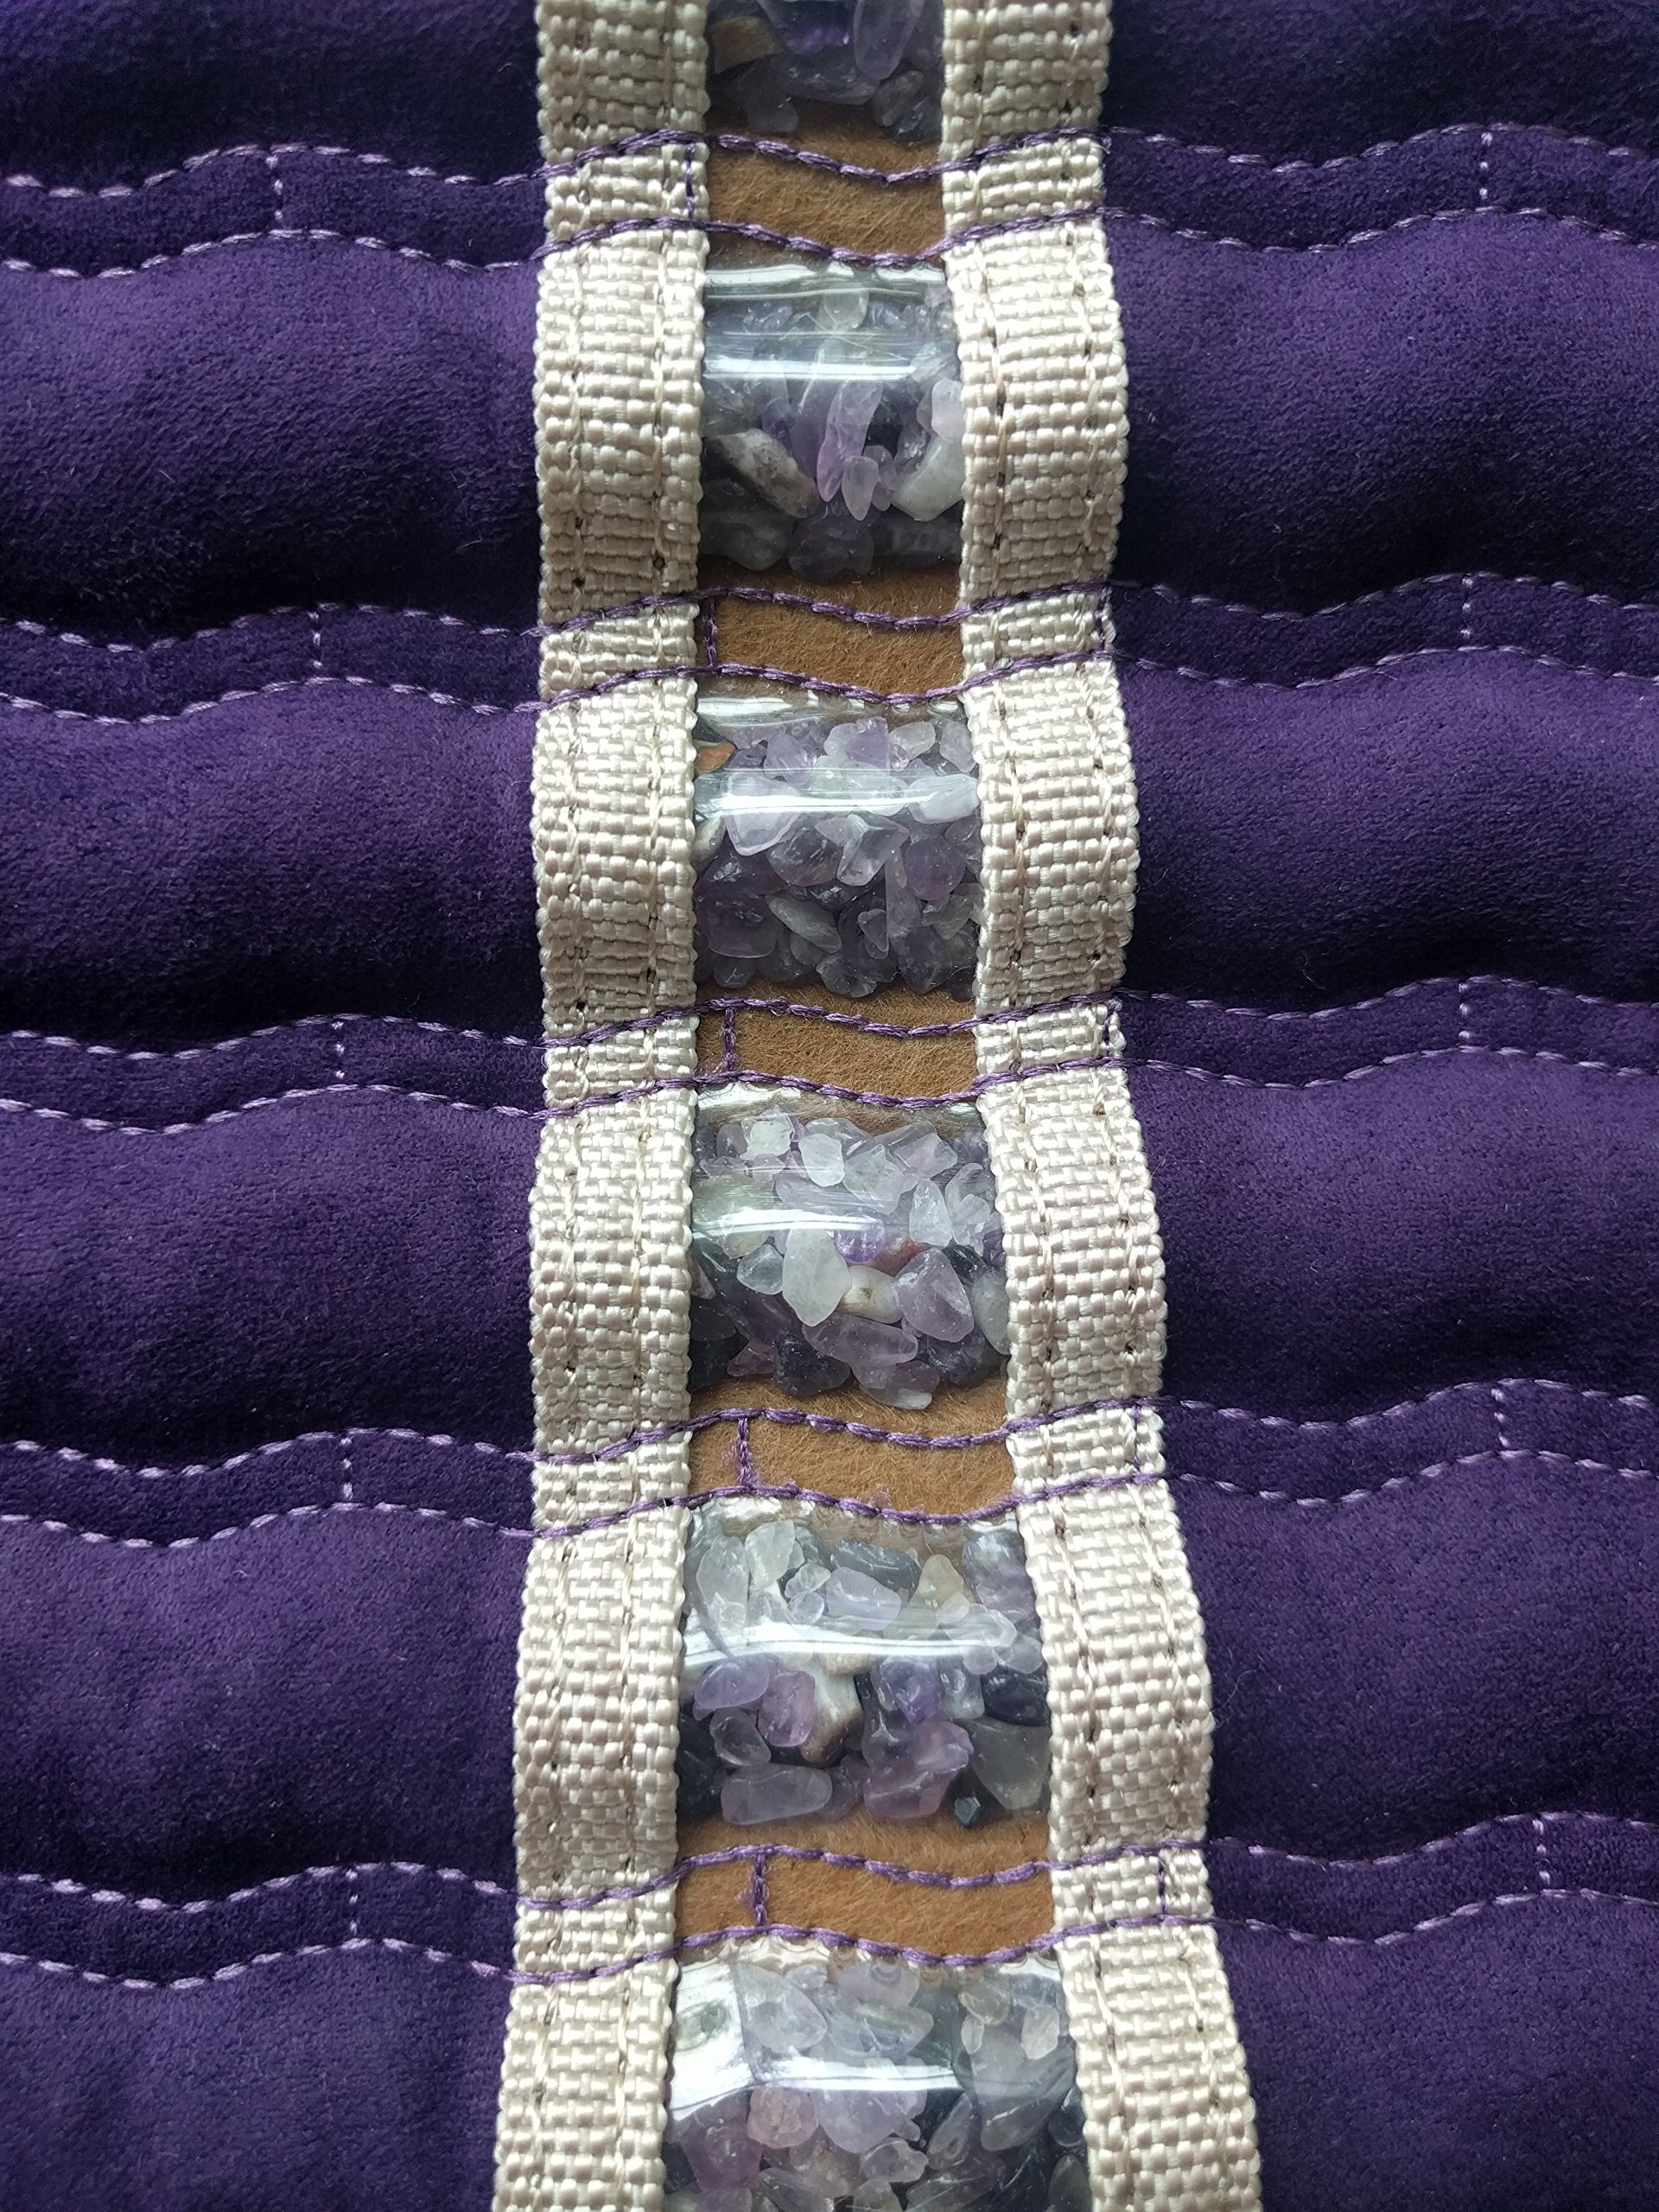 Far Infrared Amethyst Mat Pillow - Emits Negative Ions - Crystal FIR Rays - 100% Natural Amethyst Gemstones - Non Electric - For Headache and Stress Relief - To Sleep Better - GENTLE support - Purple by MediCrystal (Image #4)